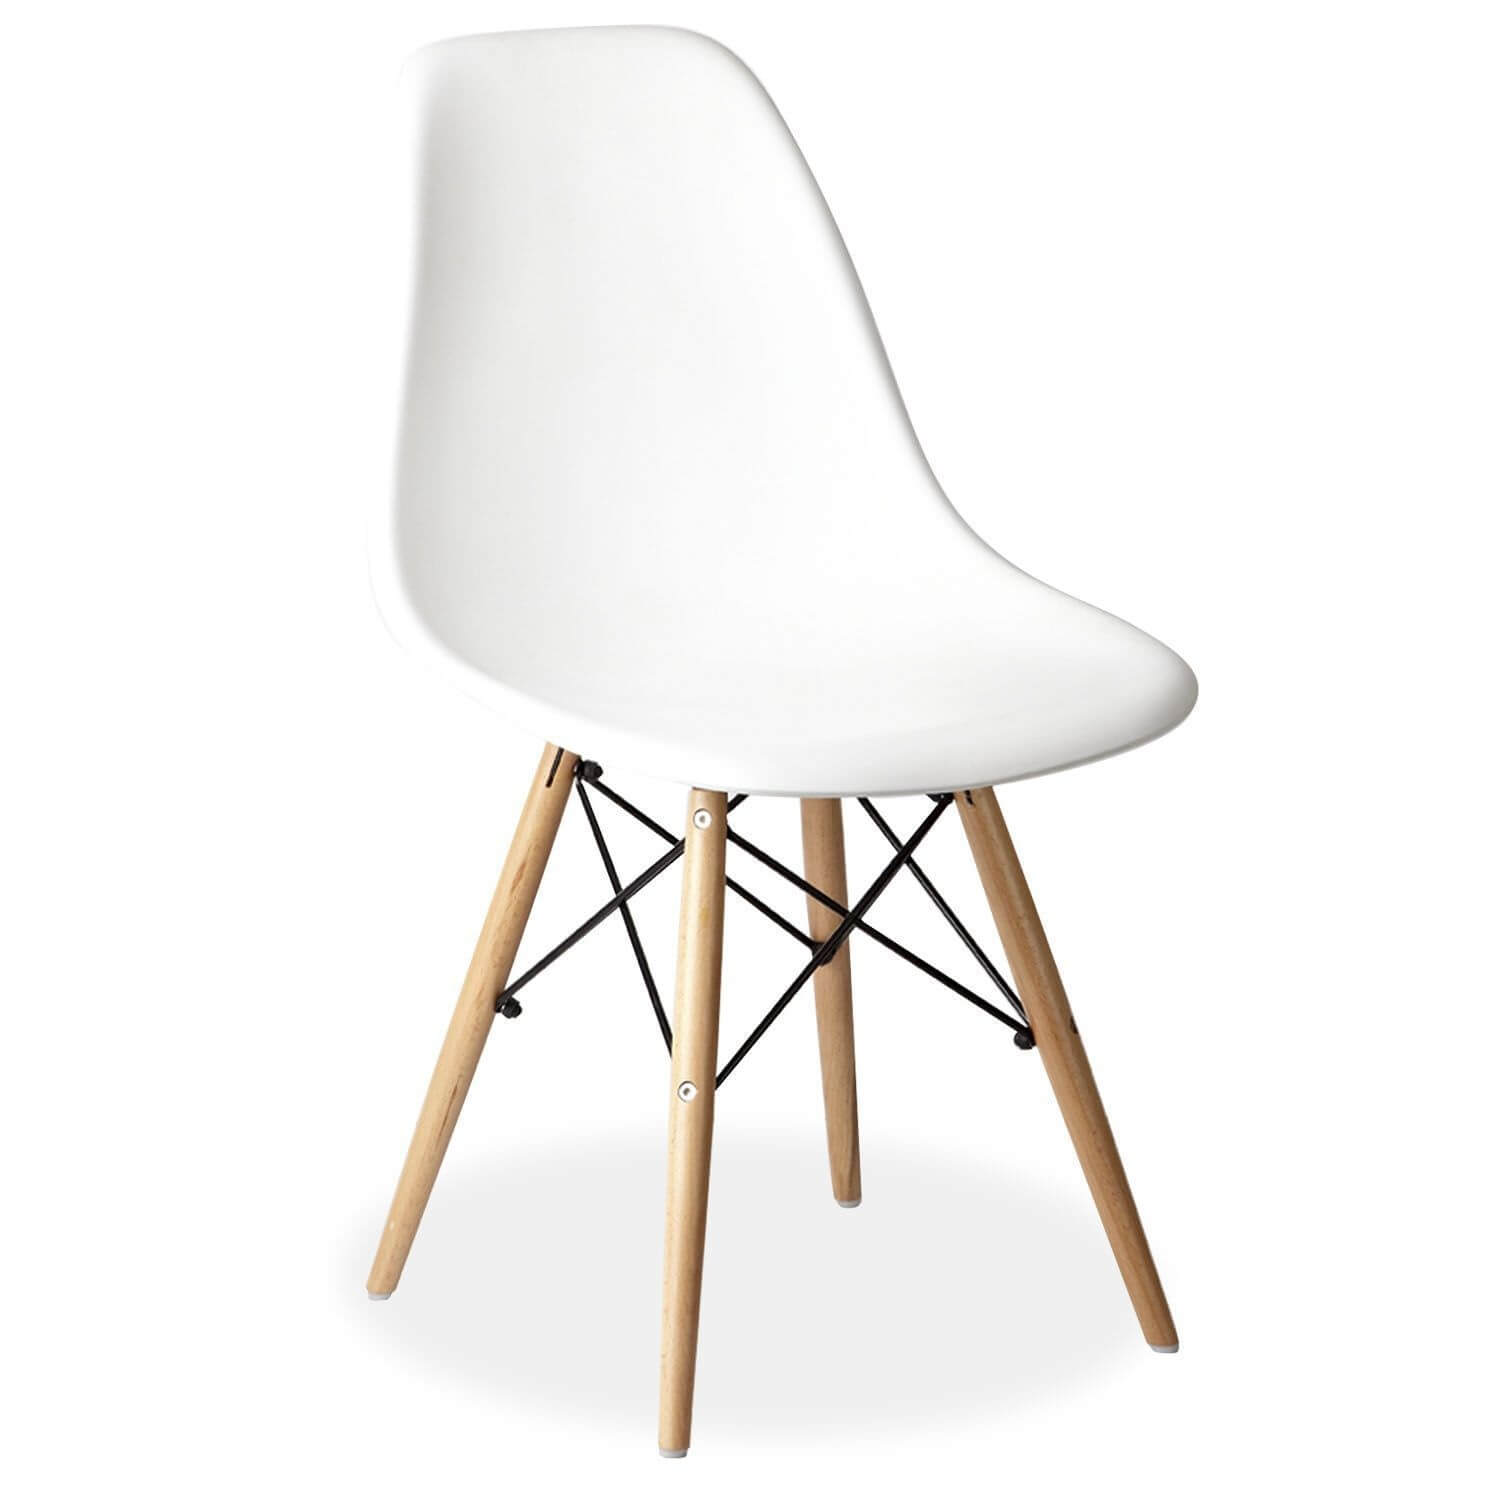 Eames Dsw White Chair Hire Eco Furniture Hire London - Eames Chair London